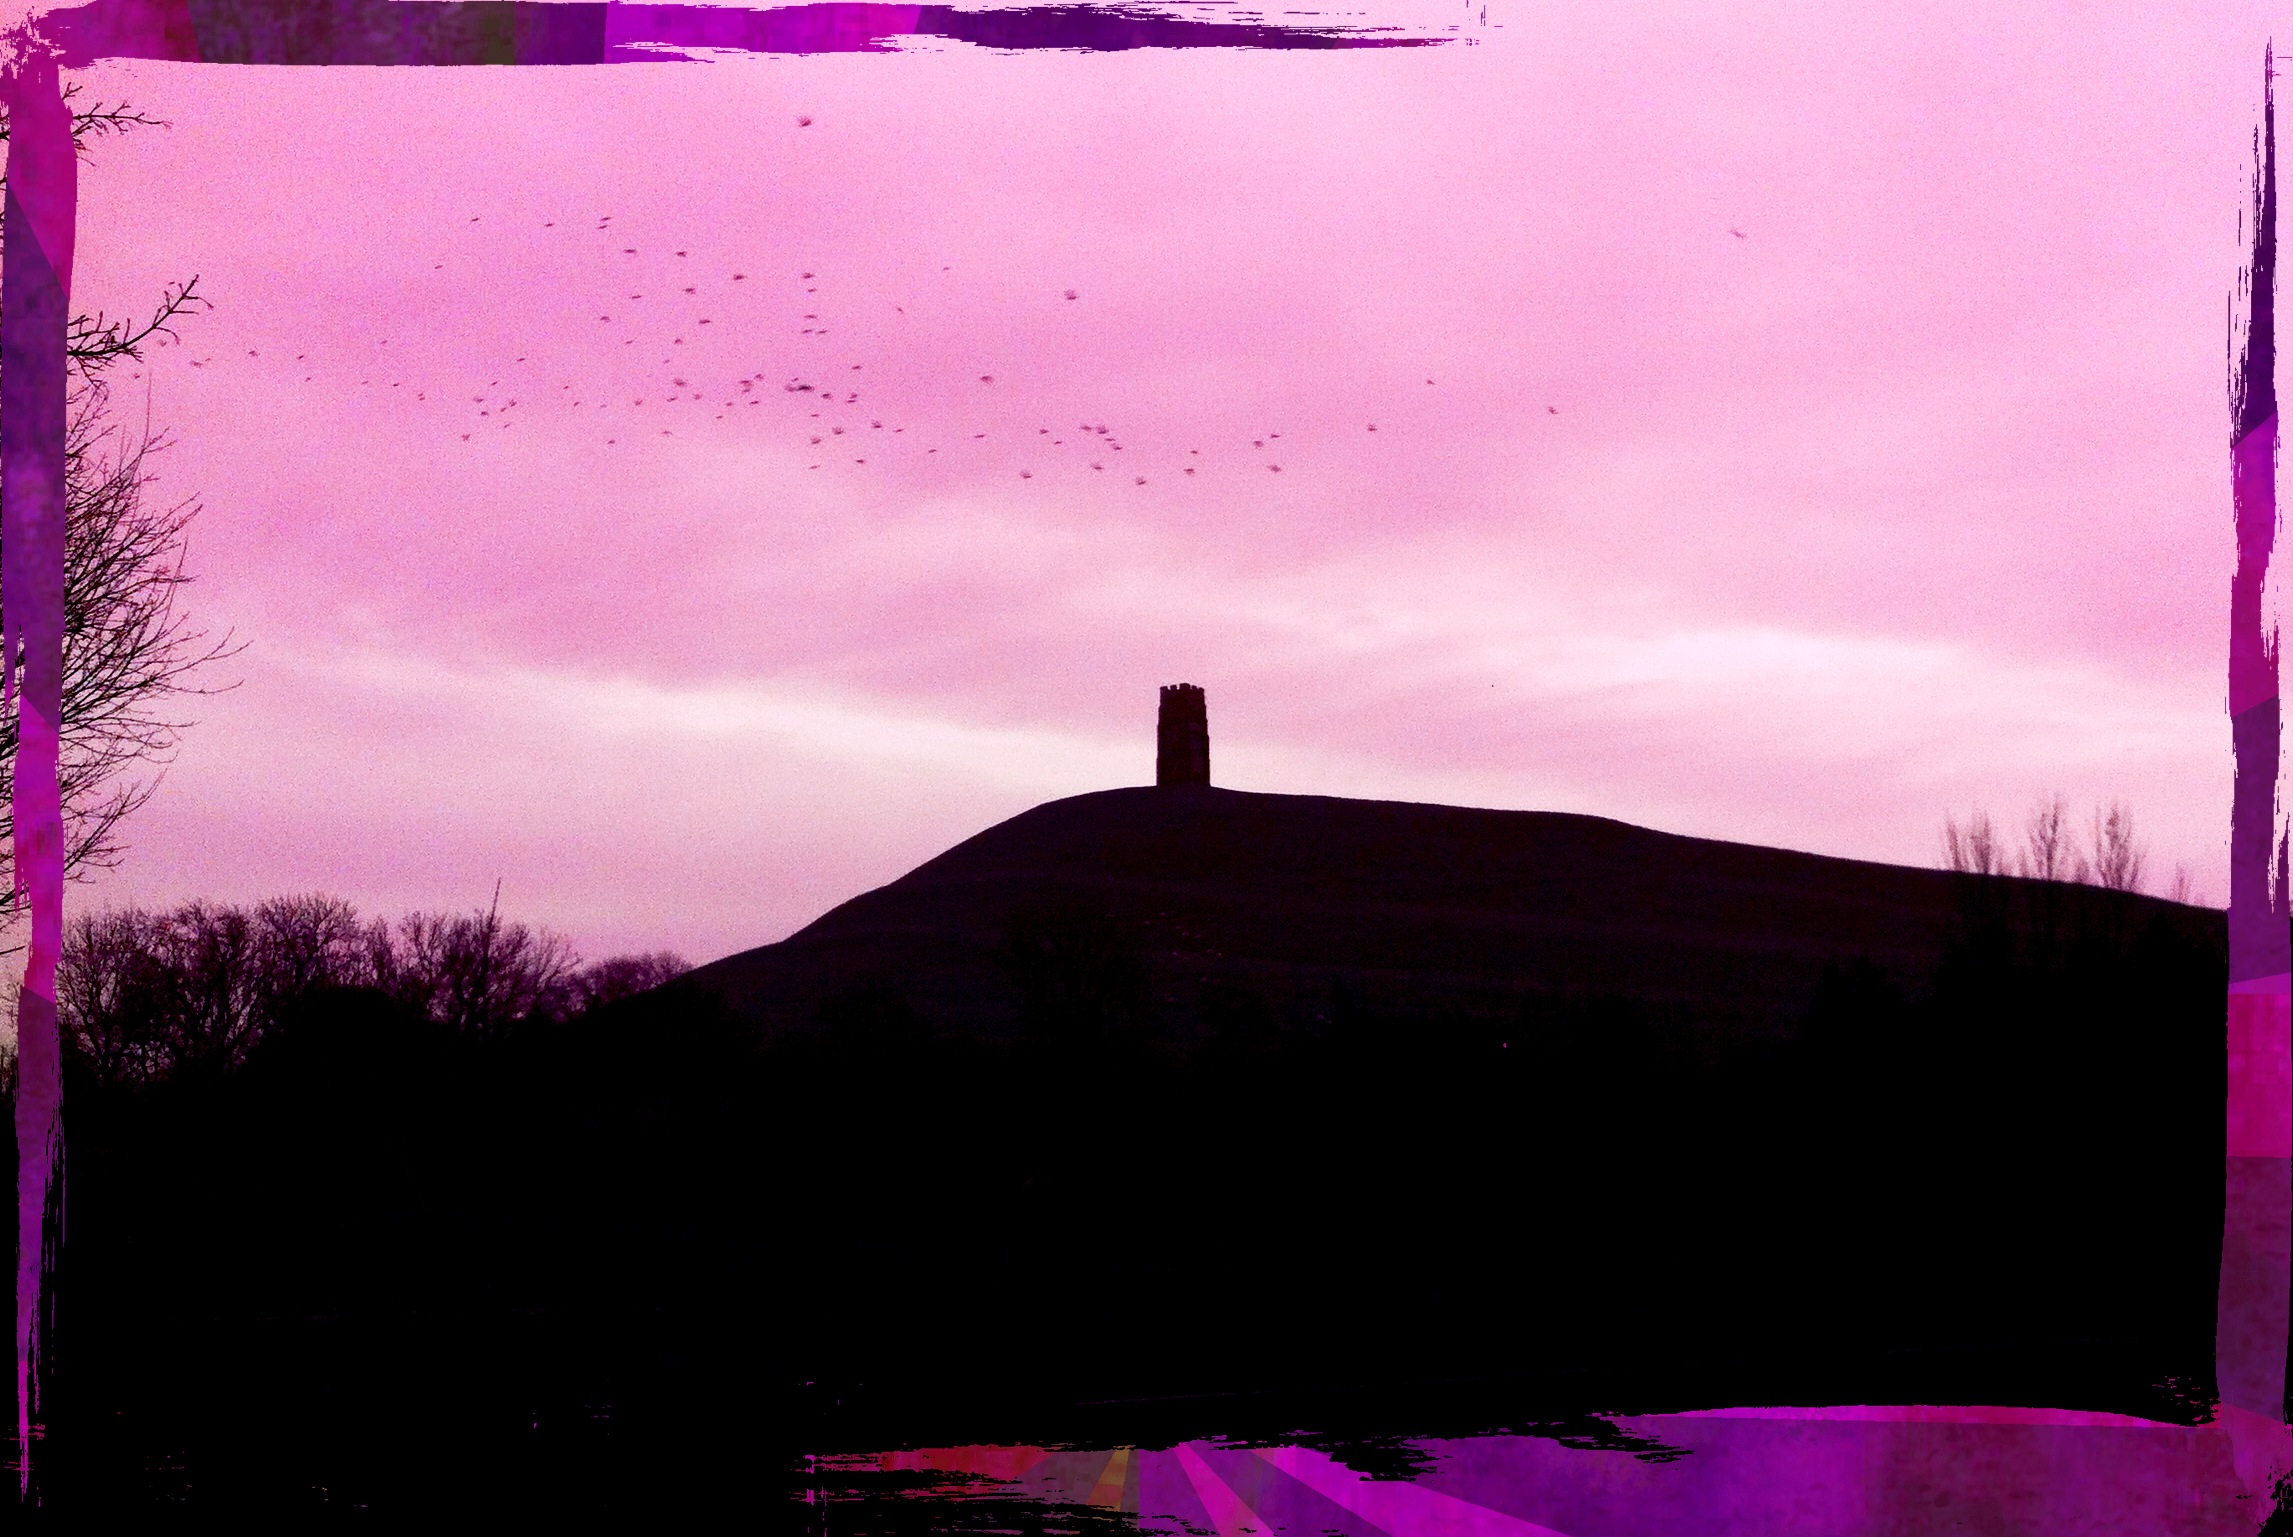 Glastonbury Tor Natalie Glasson OmNa School